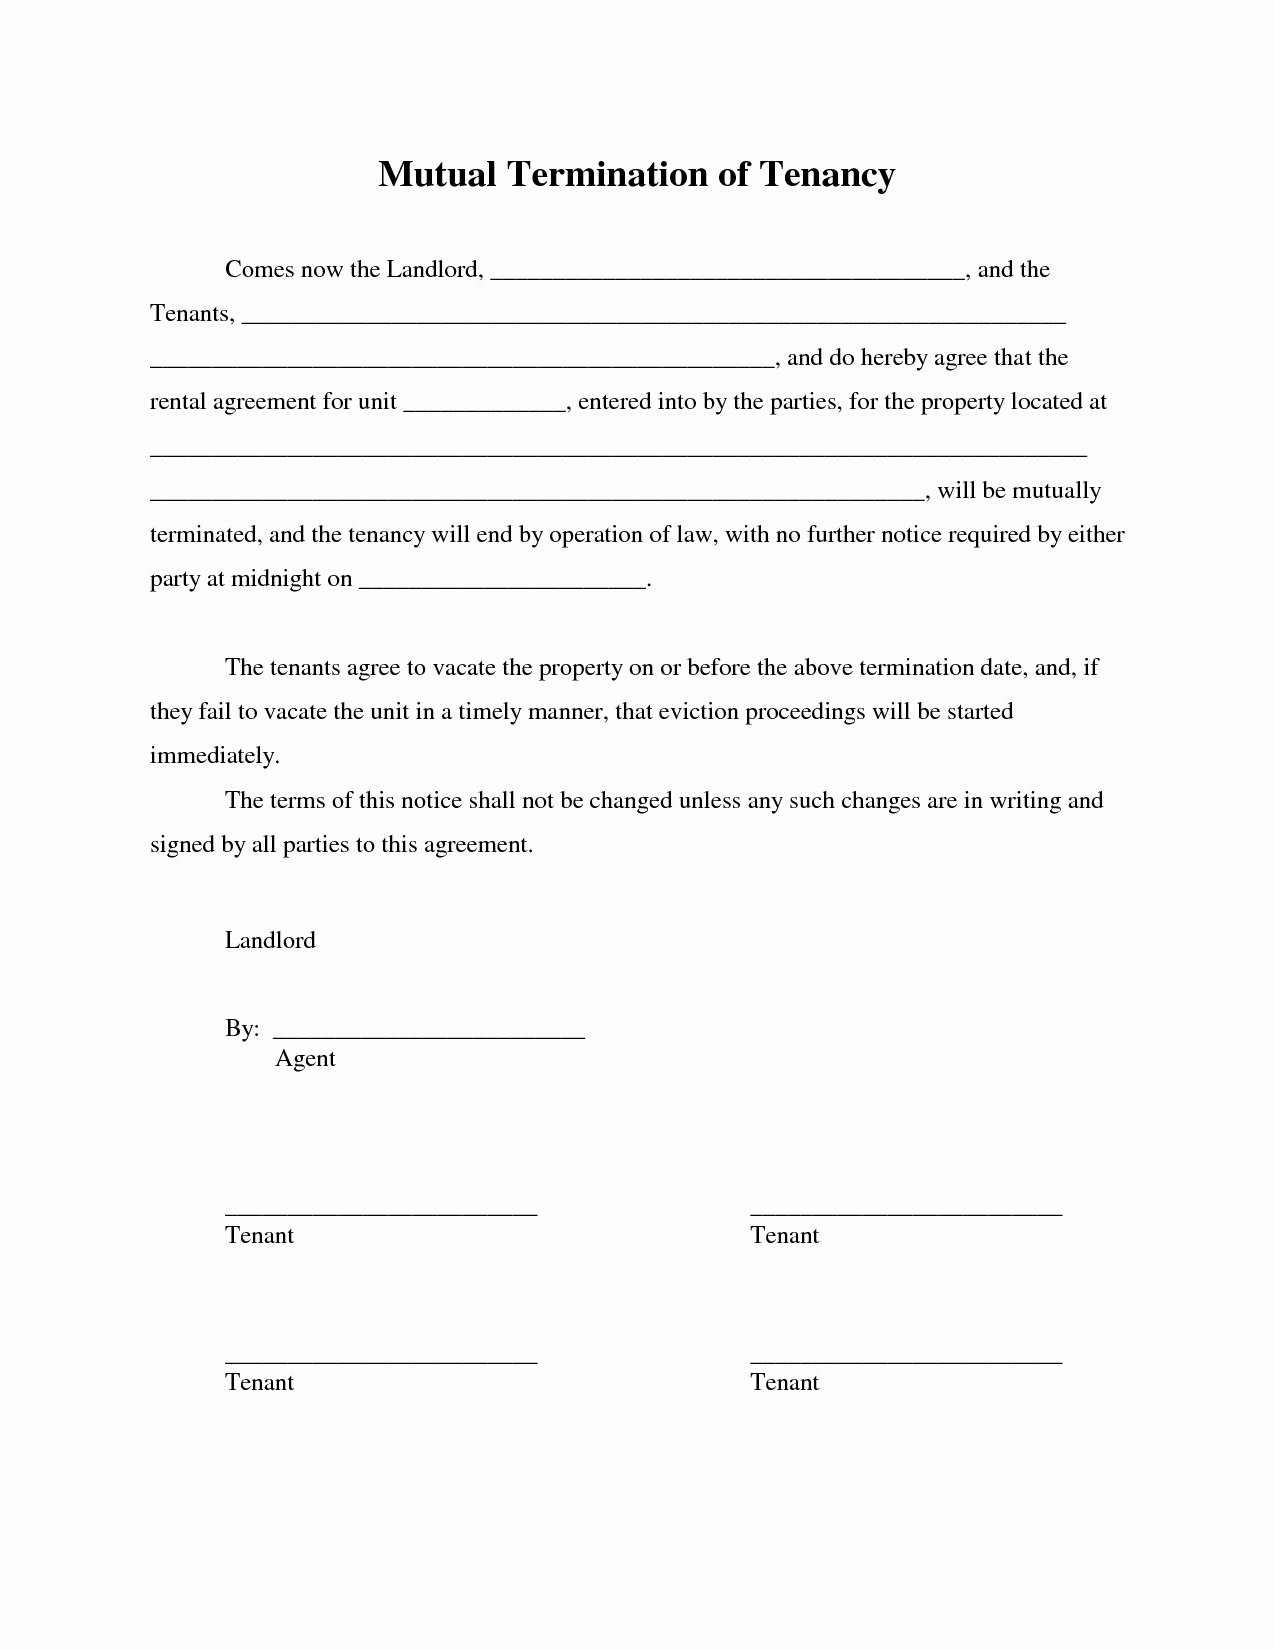 Letter Of Intent to Lease Template Beautiful Mercial Lease Letter Intent Template Sample